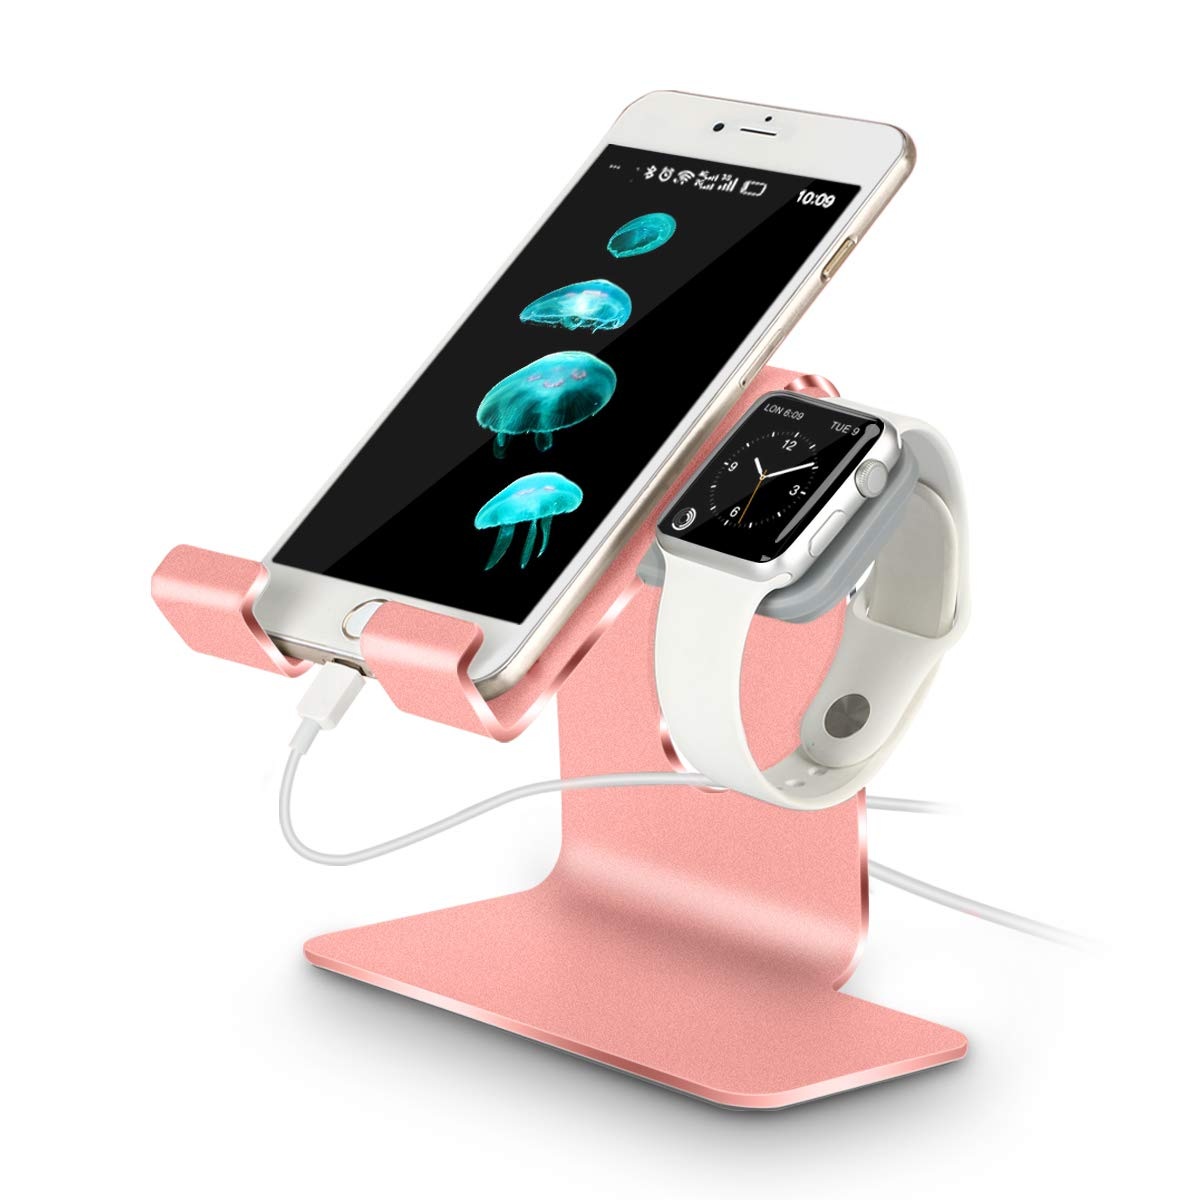 Soporte de carga compatible con Apple Watch 4 / Apple Watch 3 / Apple Watch 2 / Apple Watch